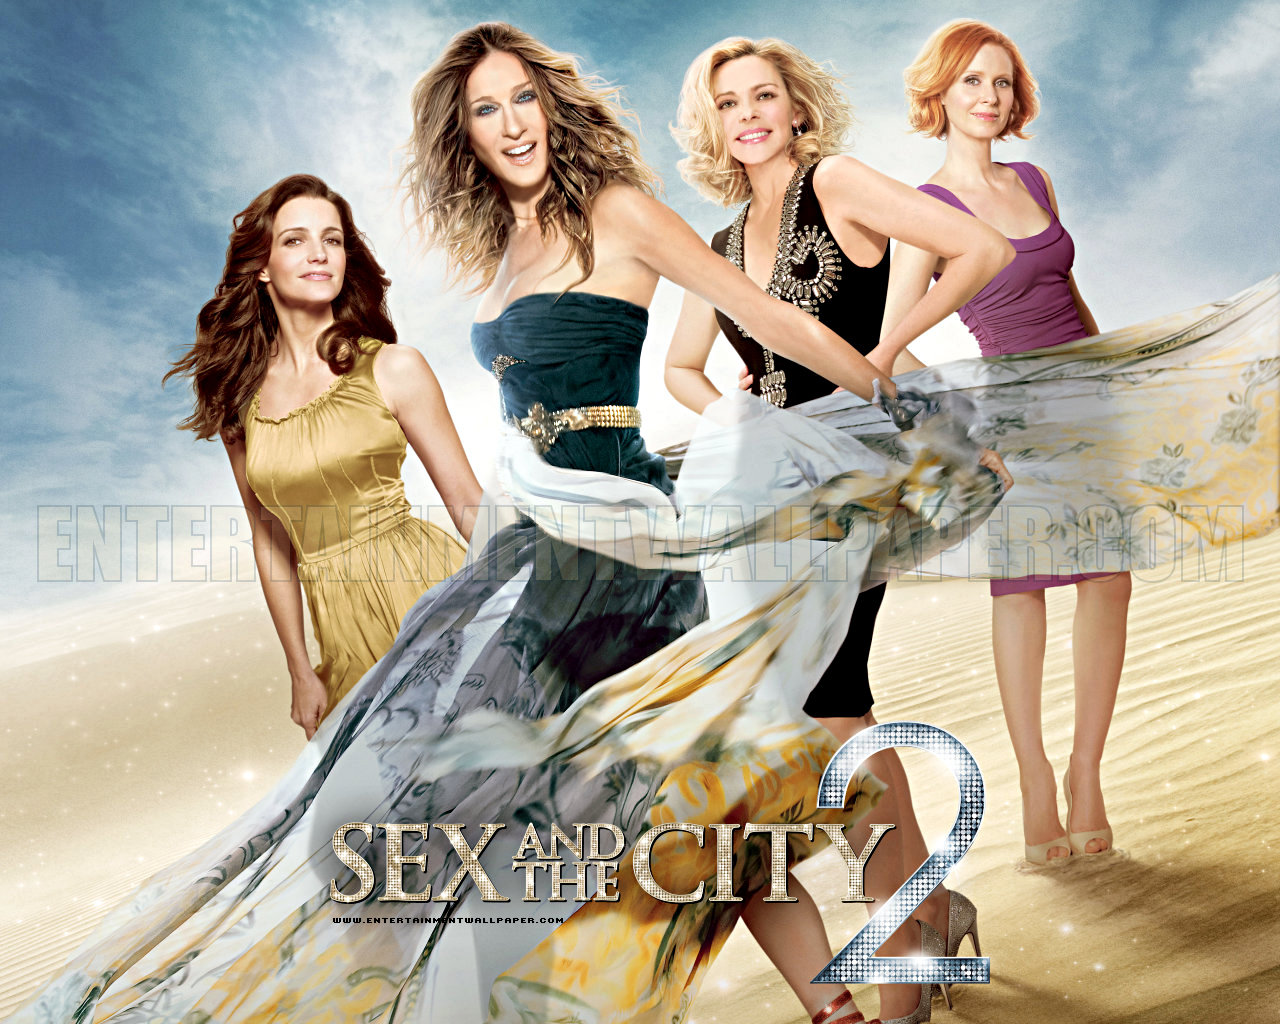 Sex and the city 2 video online